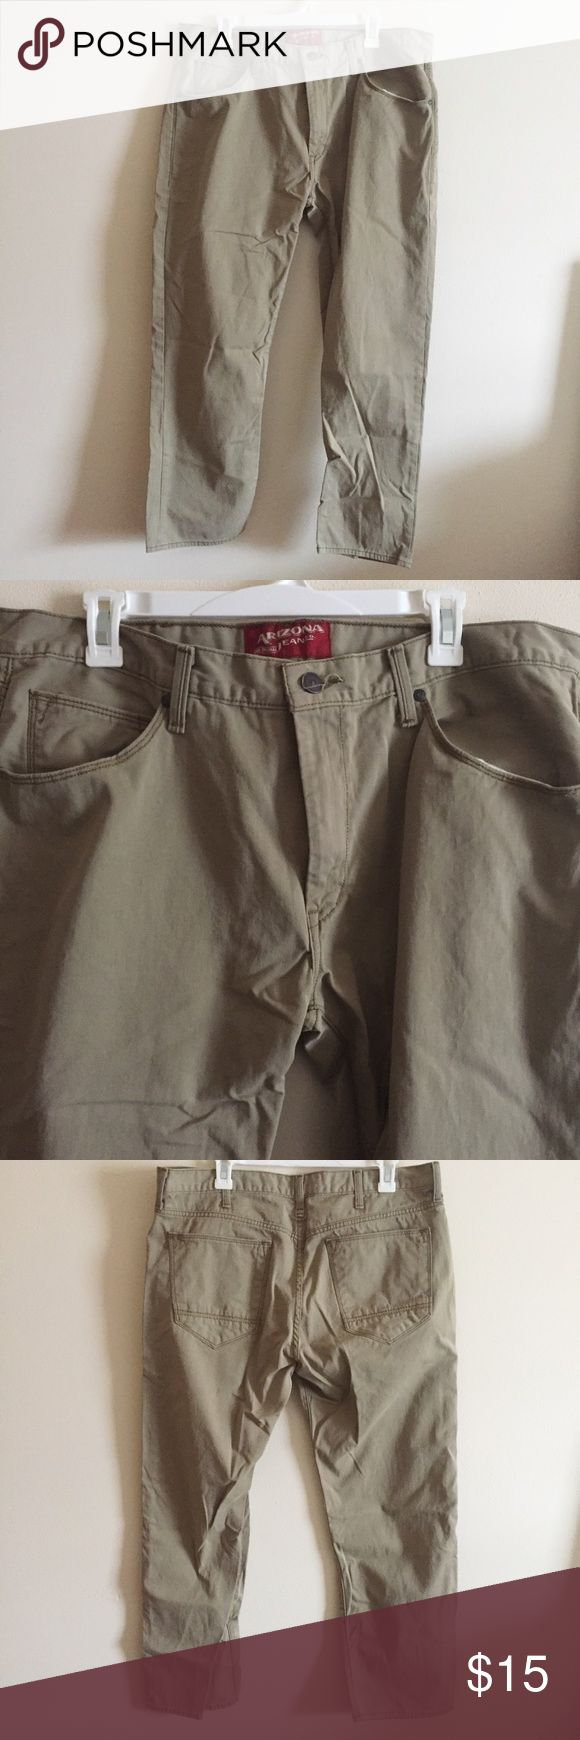 Men's Khaki Pants Men's Khaki Pants from Kohls! Only worn a few times! Size 38x30   👍🏼 Thanks for checking out my closet!  ❓Ask any questions!  ✅ Make me an offer!  🚫 No trades! Arizona Jean Company Pants Chinos & Khakis